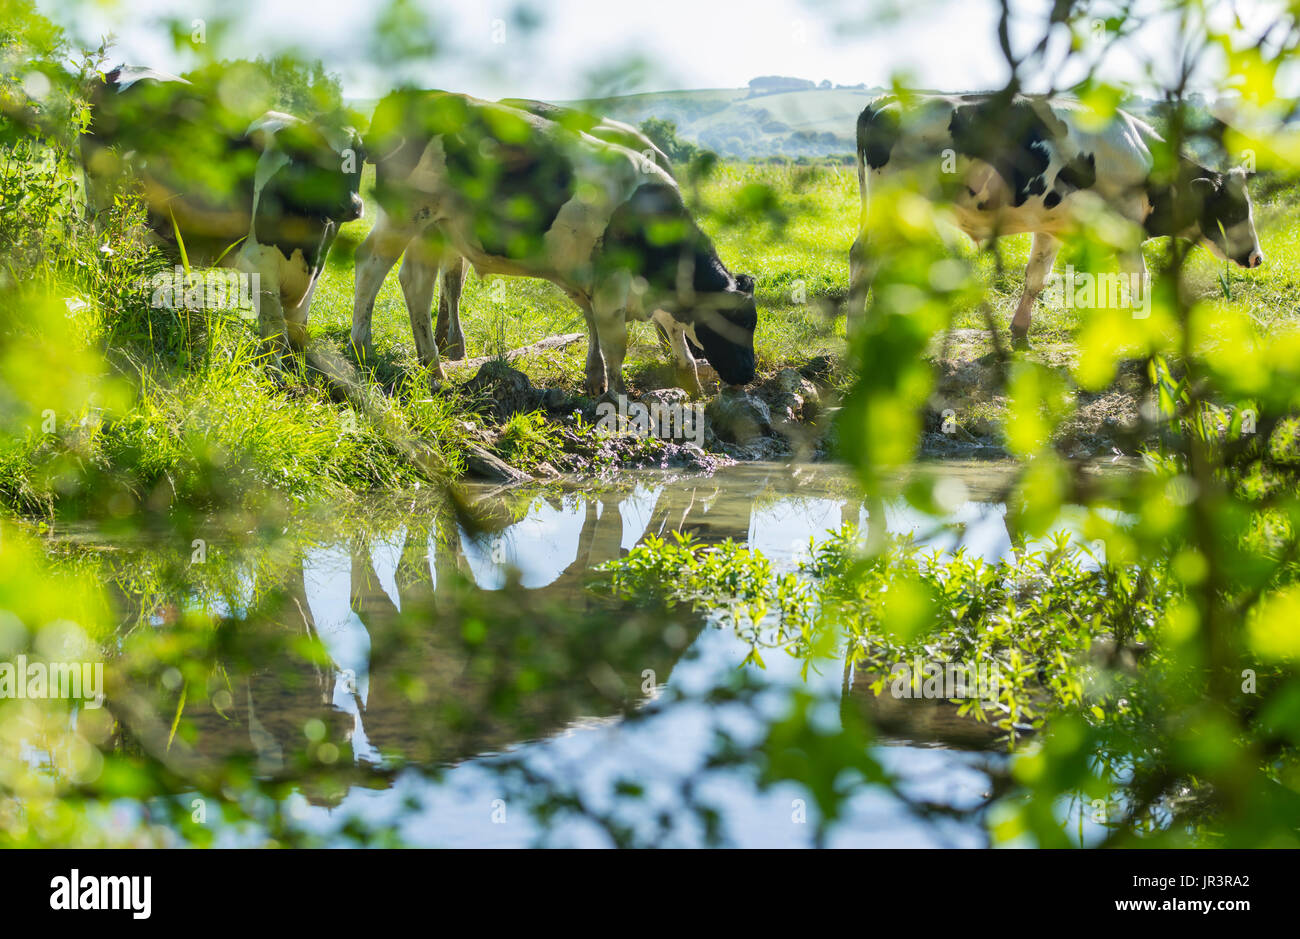 Cows grazing. Black and white cows eating grass in a field with their reflections in water. Cow grazing. Reflecting in water. - Stock Image